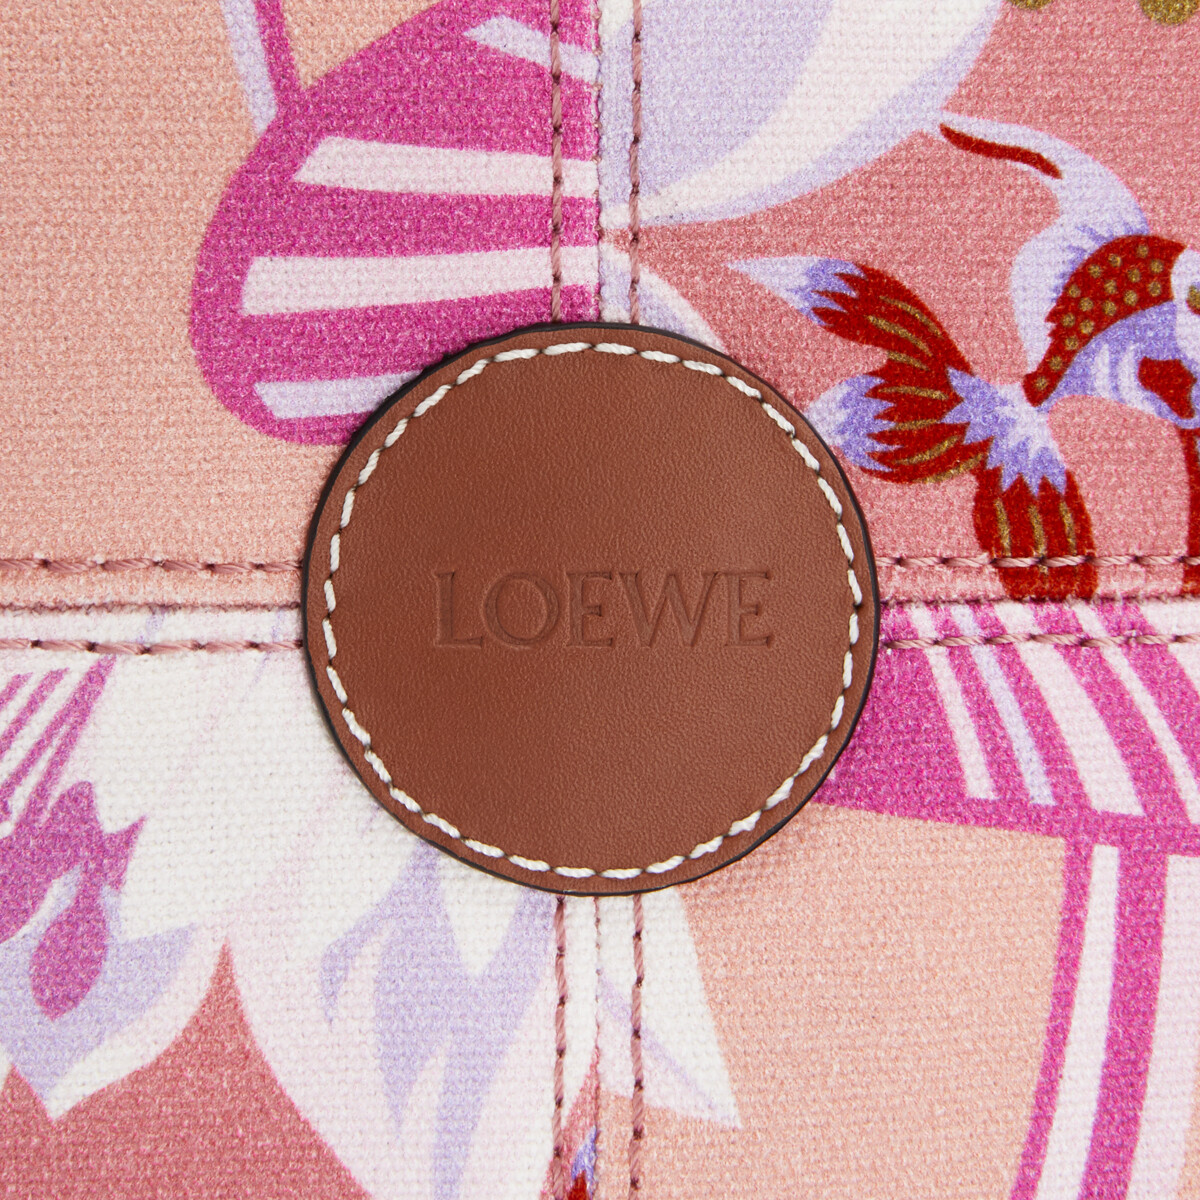 LOEWE Cushion Tote Small Bag In Waterlily Canvas And Calfskin Salmon/Pink front